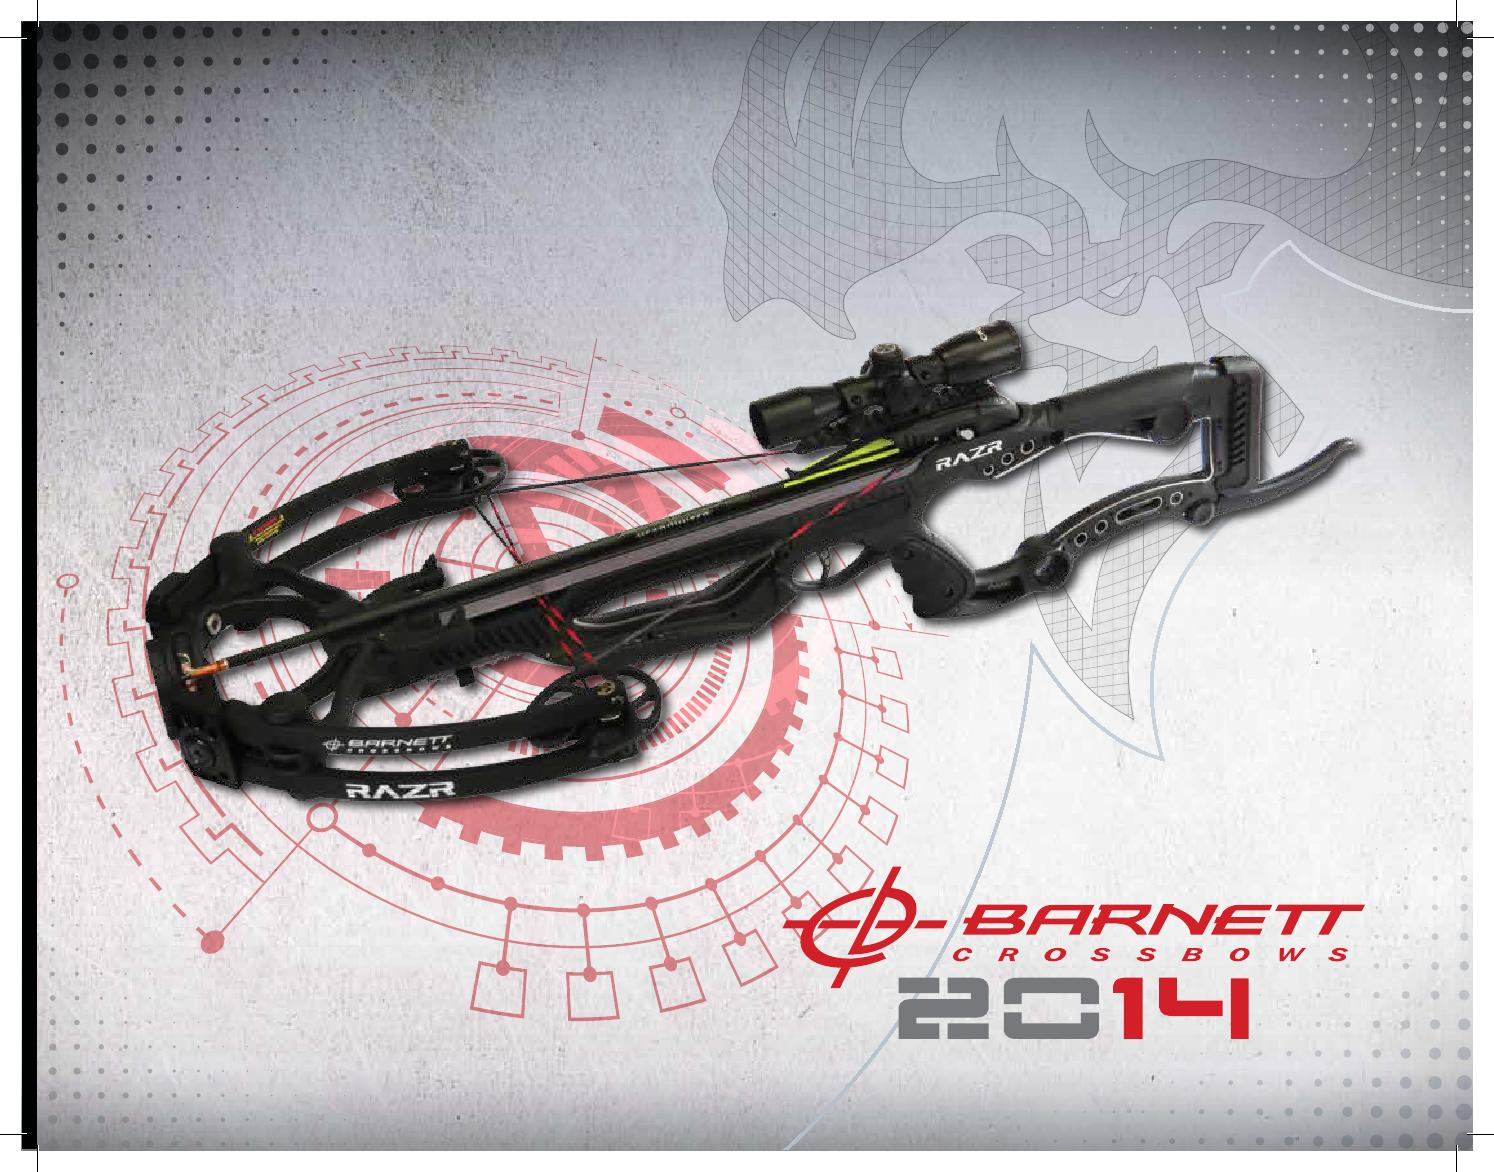 Barnett Crossbows 2014 Product Guide by PlanoSynergy - issuu